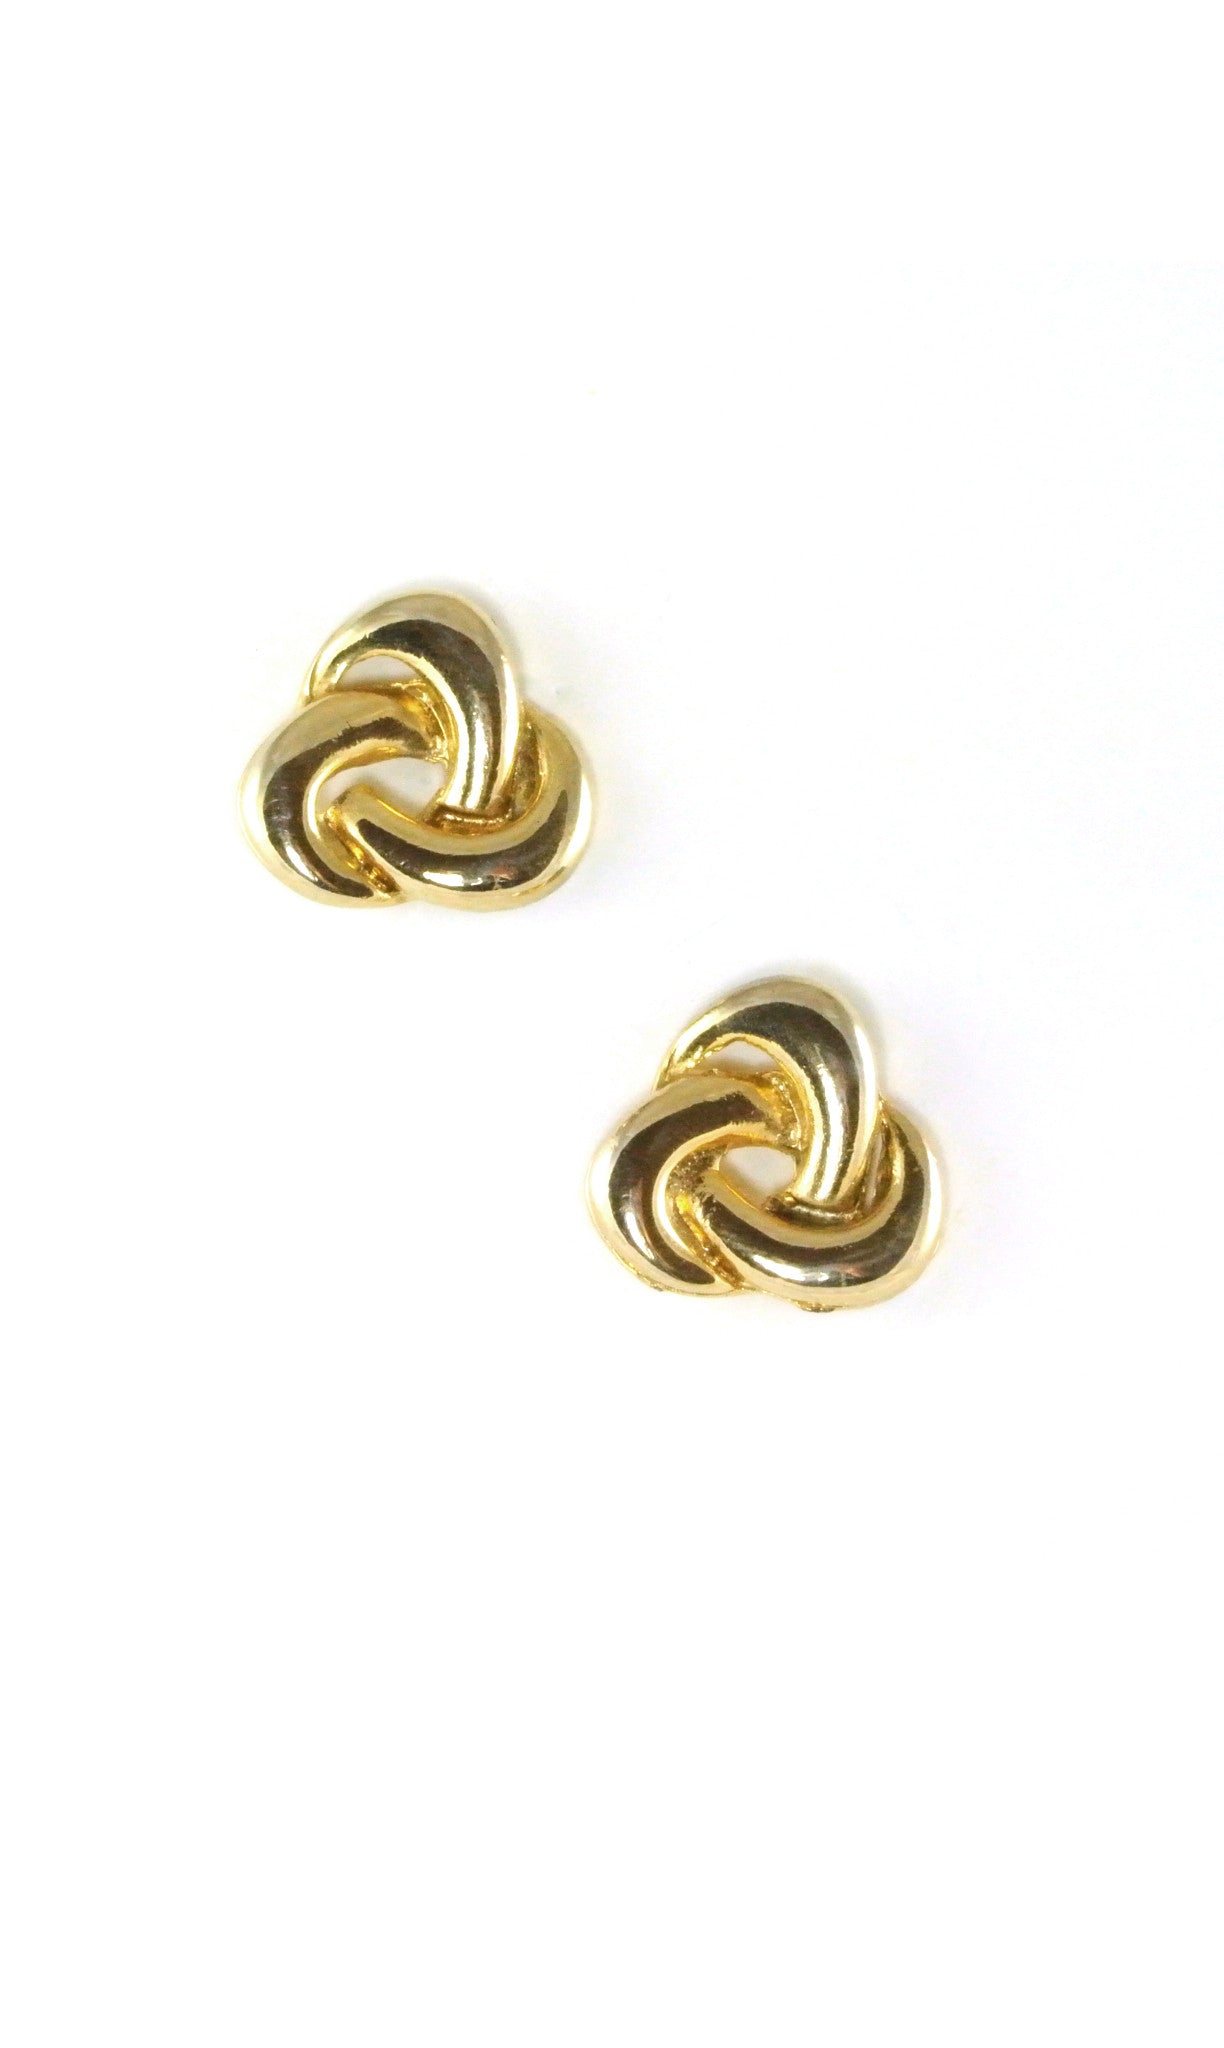 70's__Vintage__Classic Drop Link Earrings